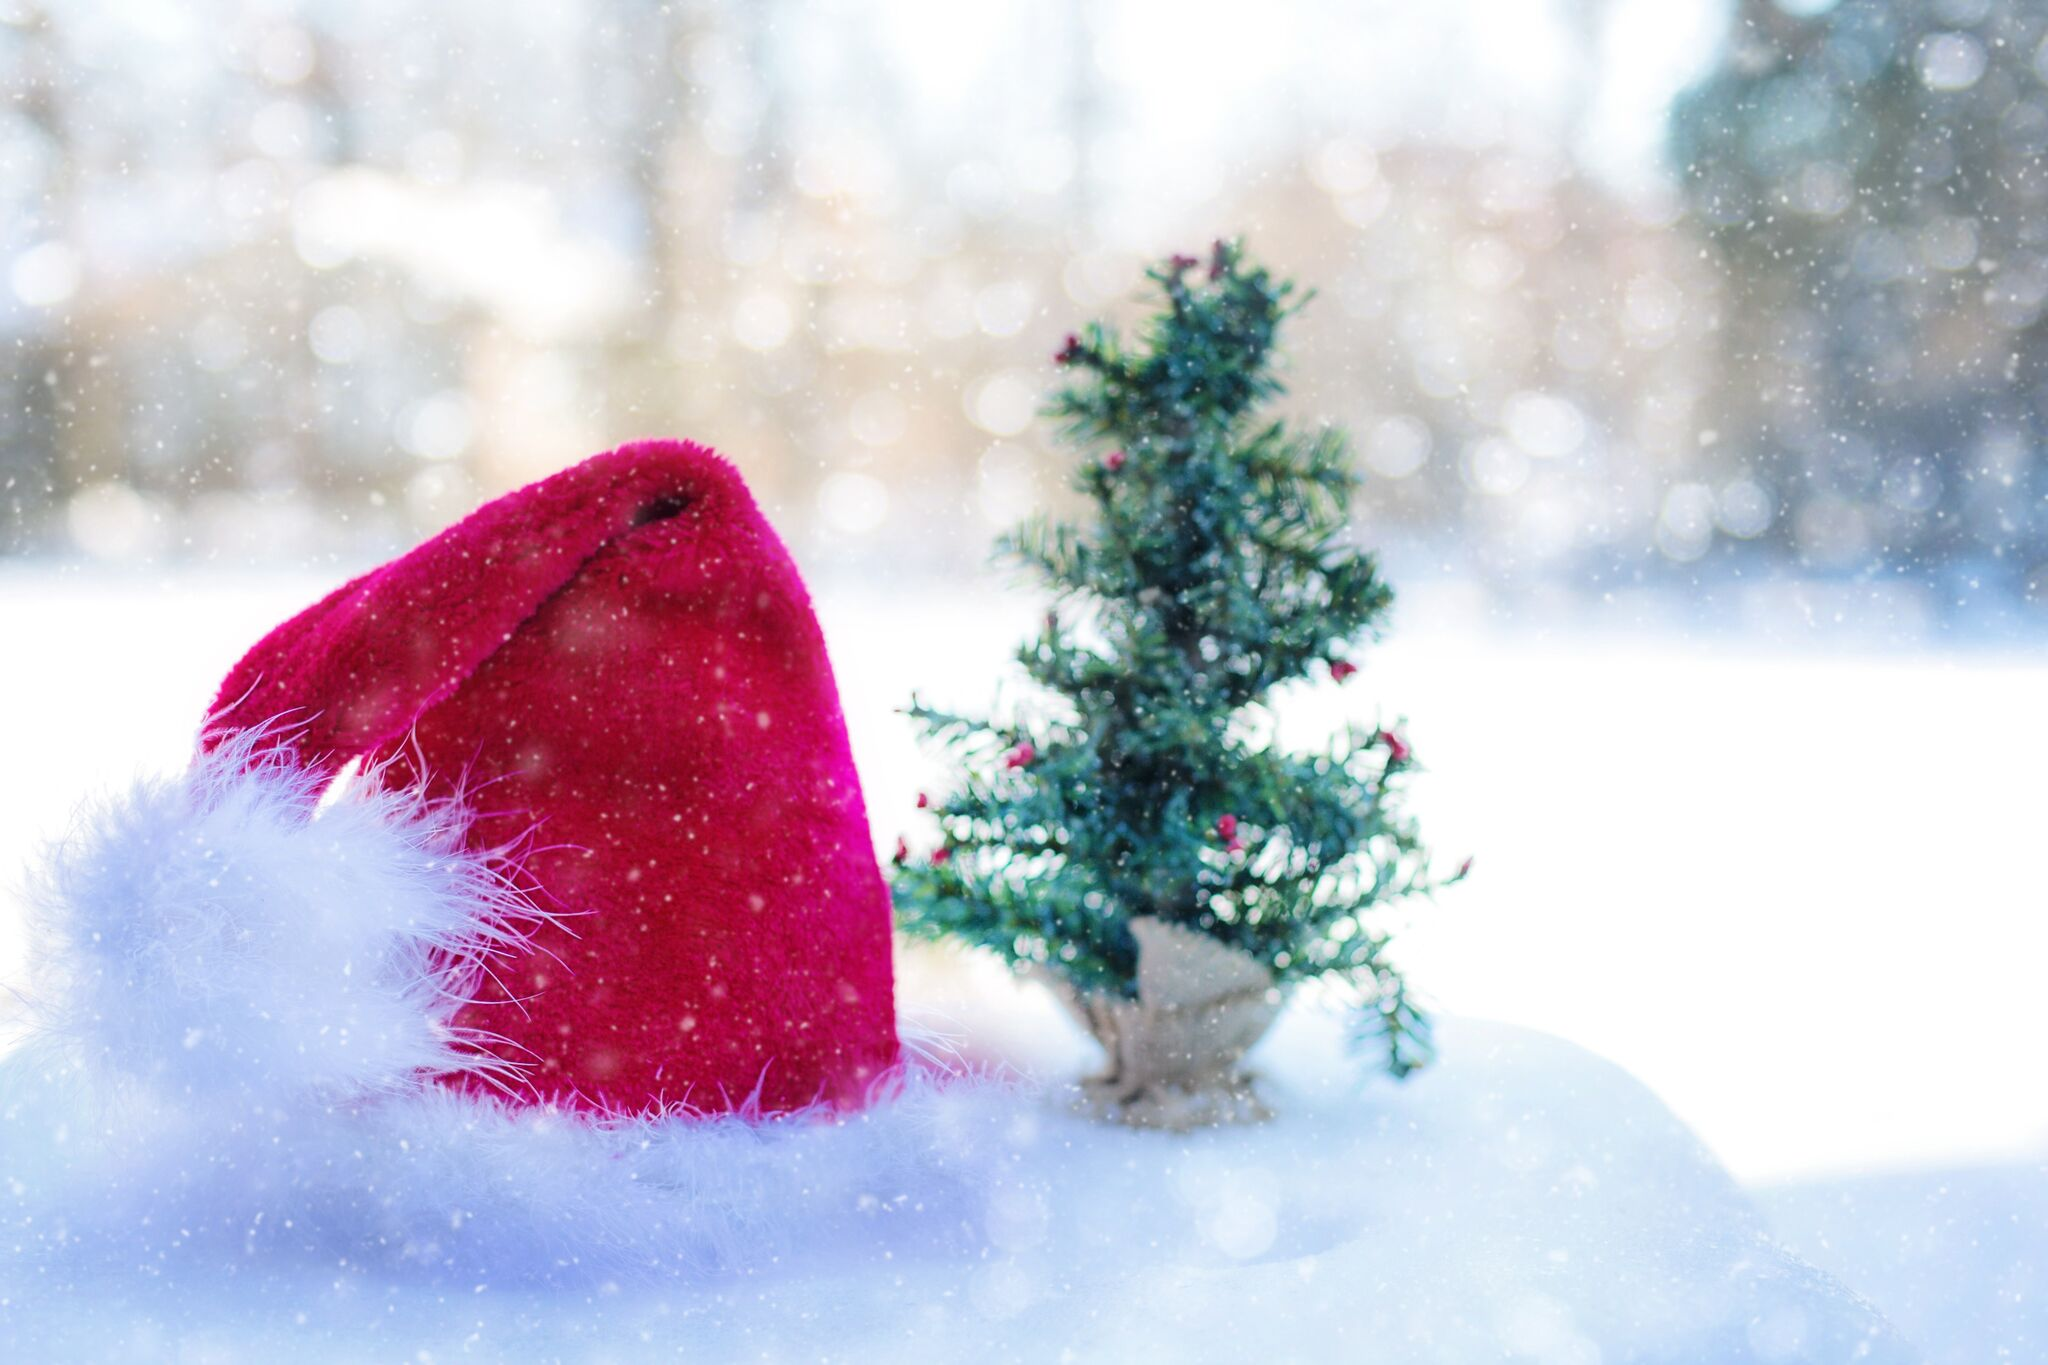 Santa-hat-and-tree-inground-pool-for-christmas